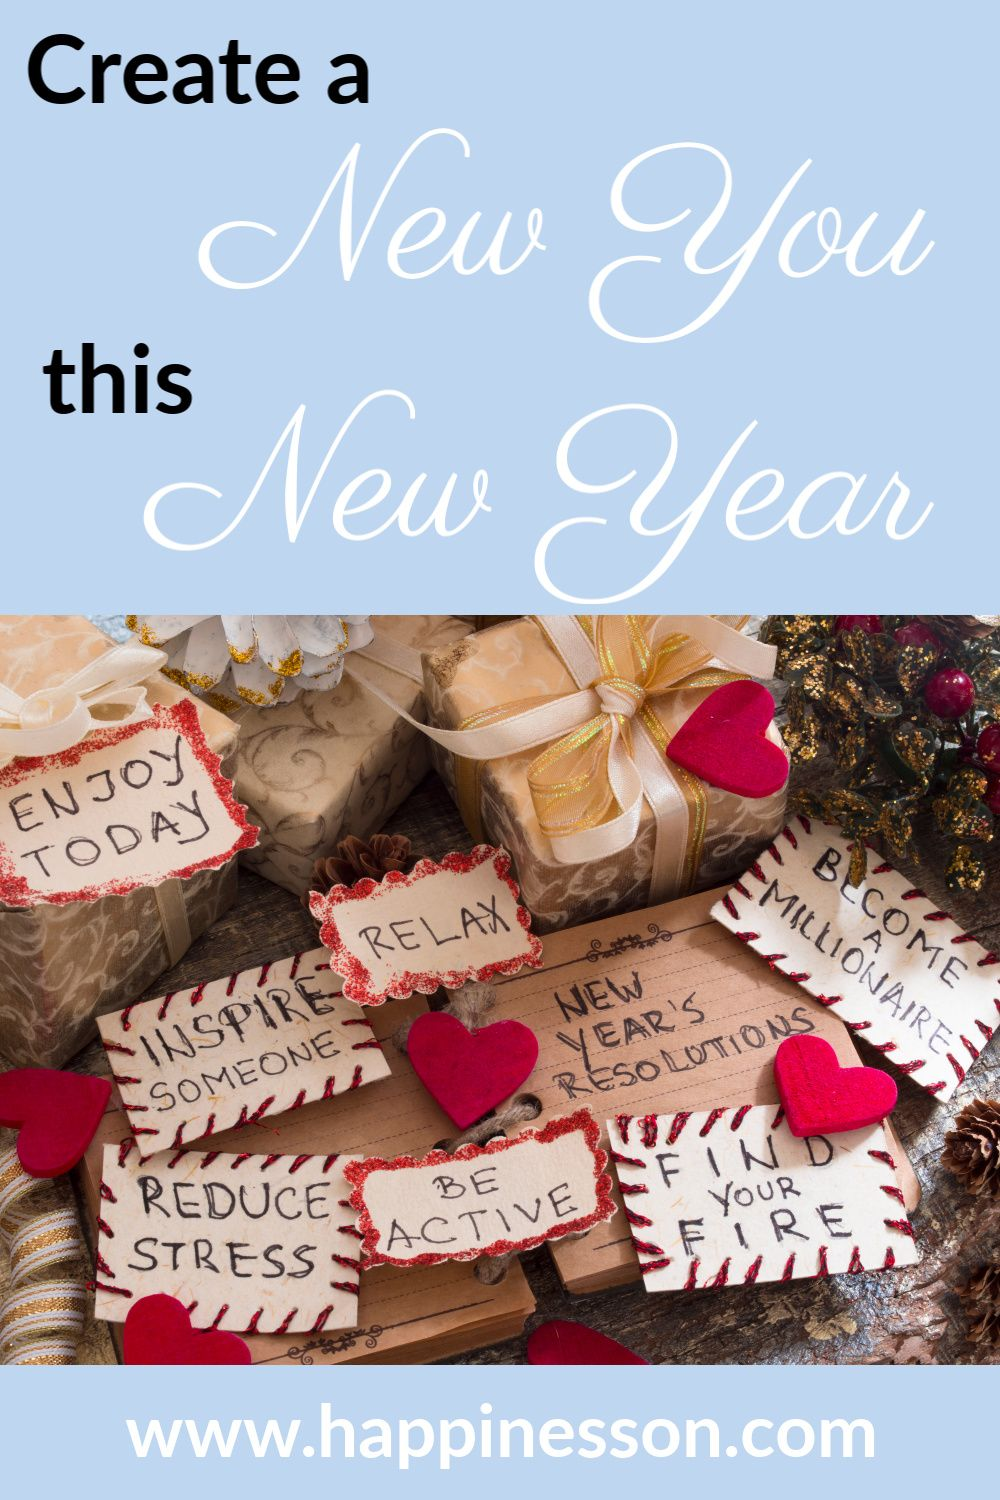 A new year signals a new beginning. Find out how new year